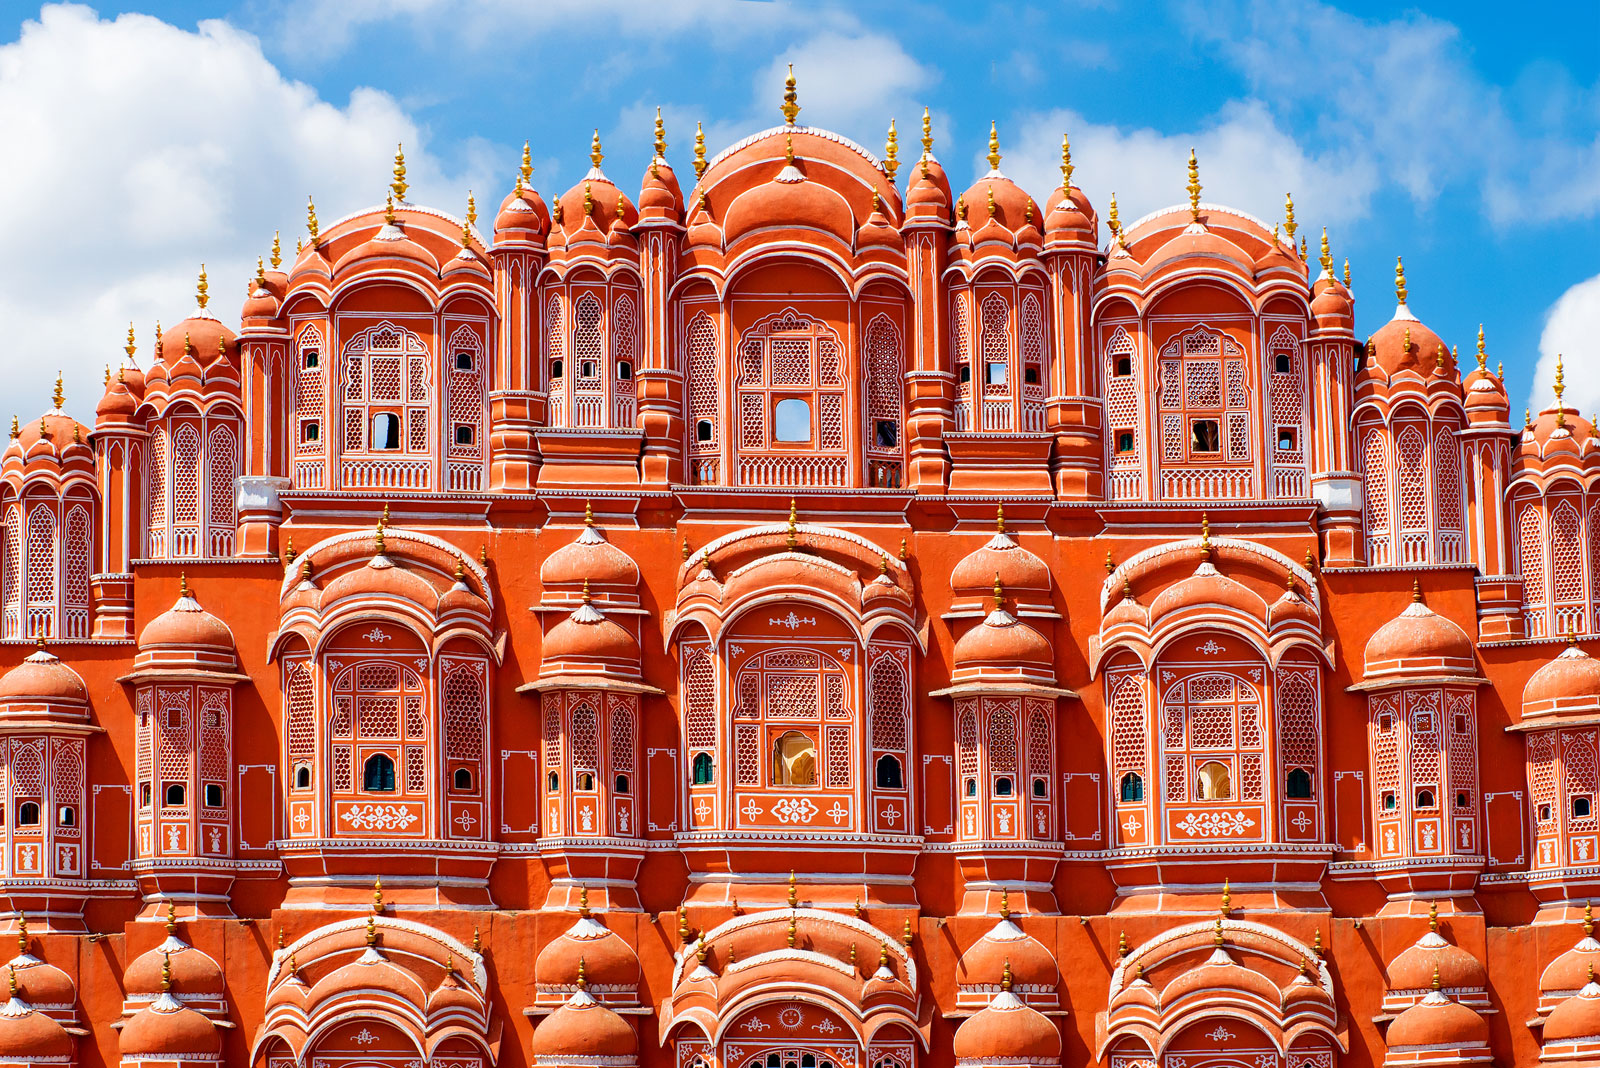 Hawa Mahal, the Palace of Wind.